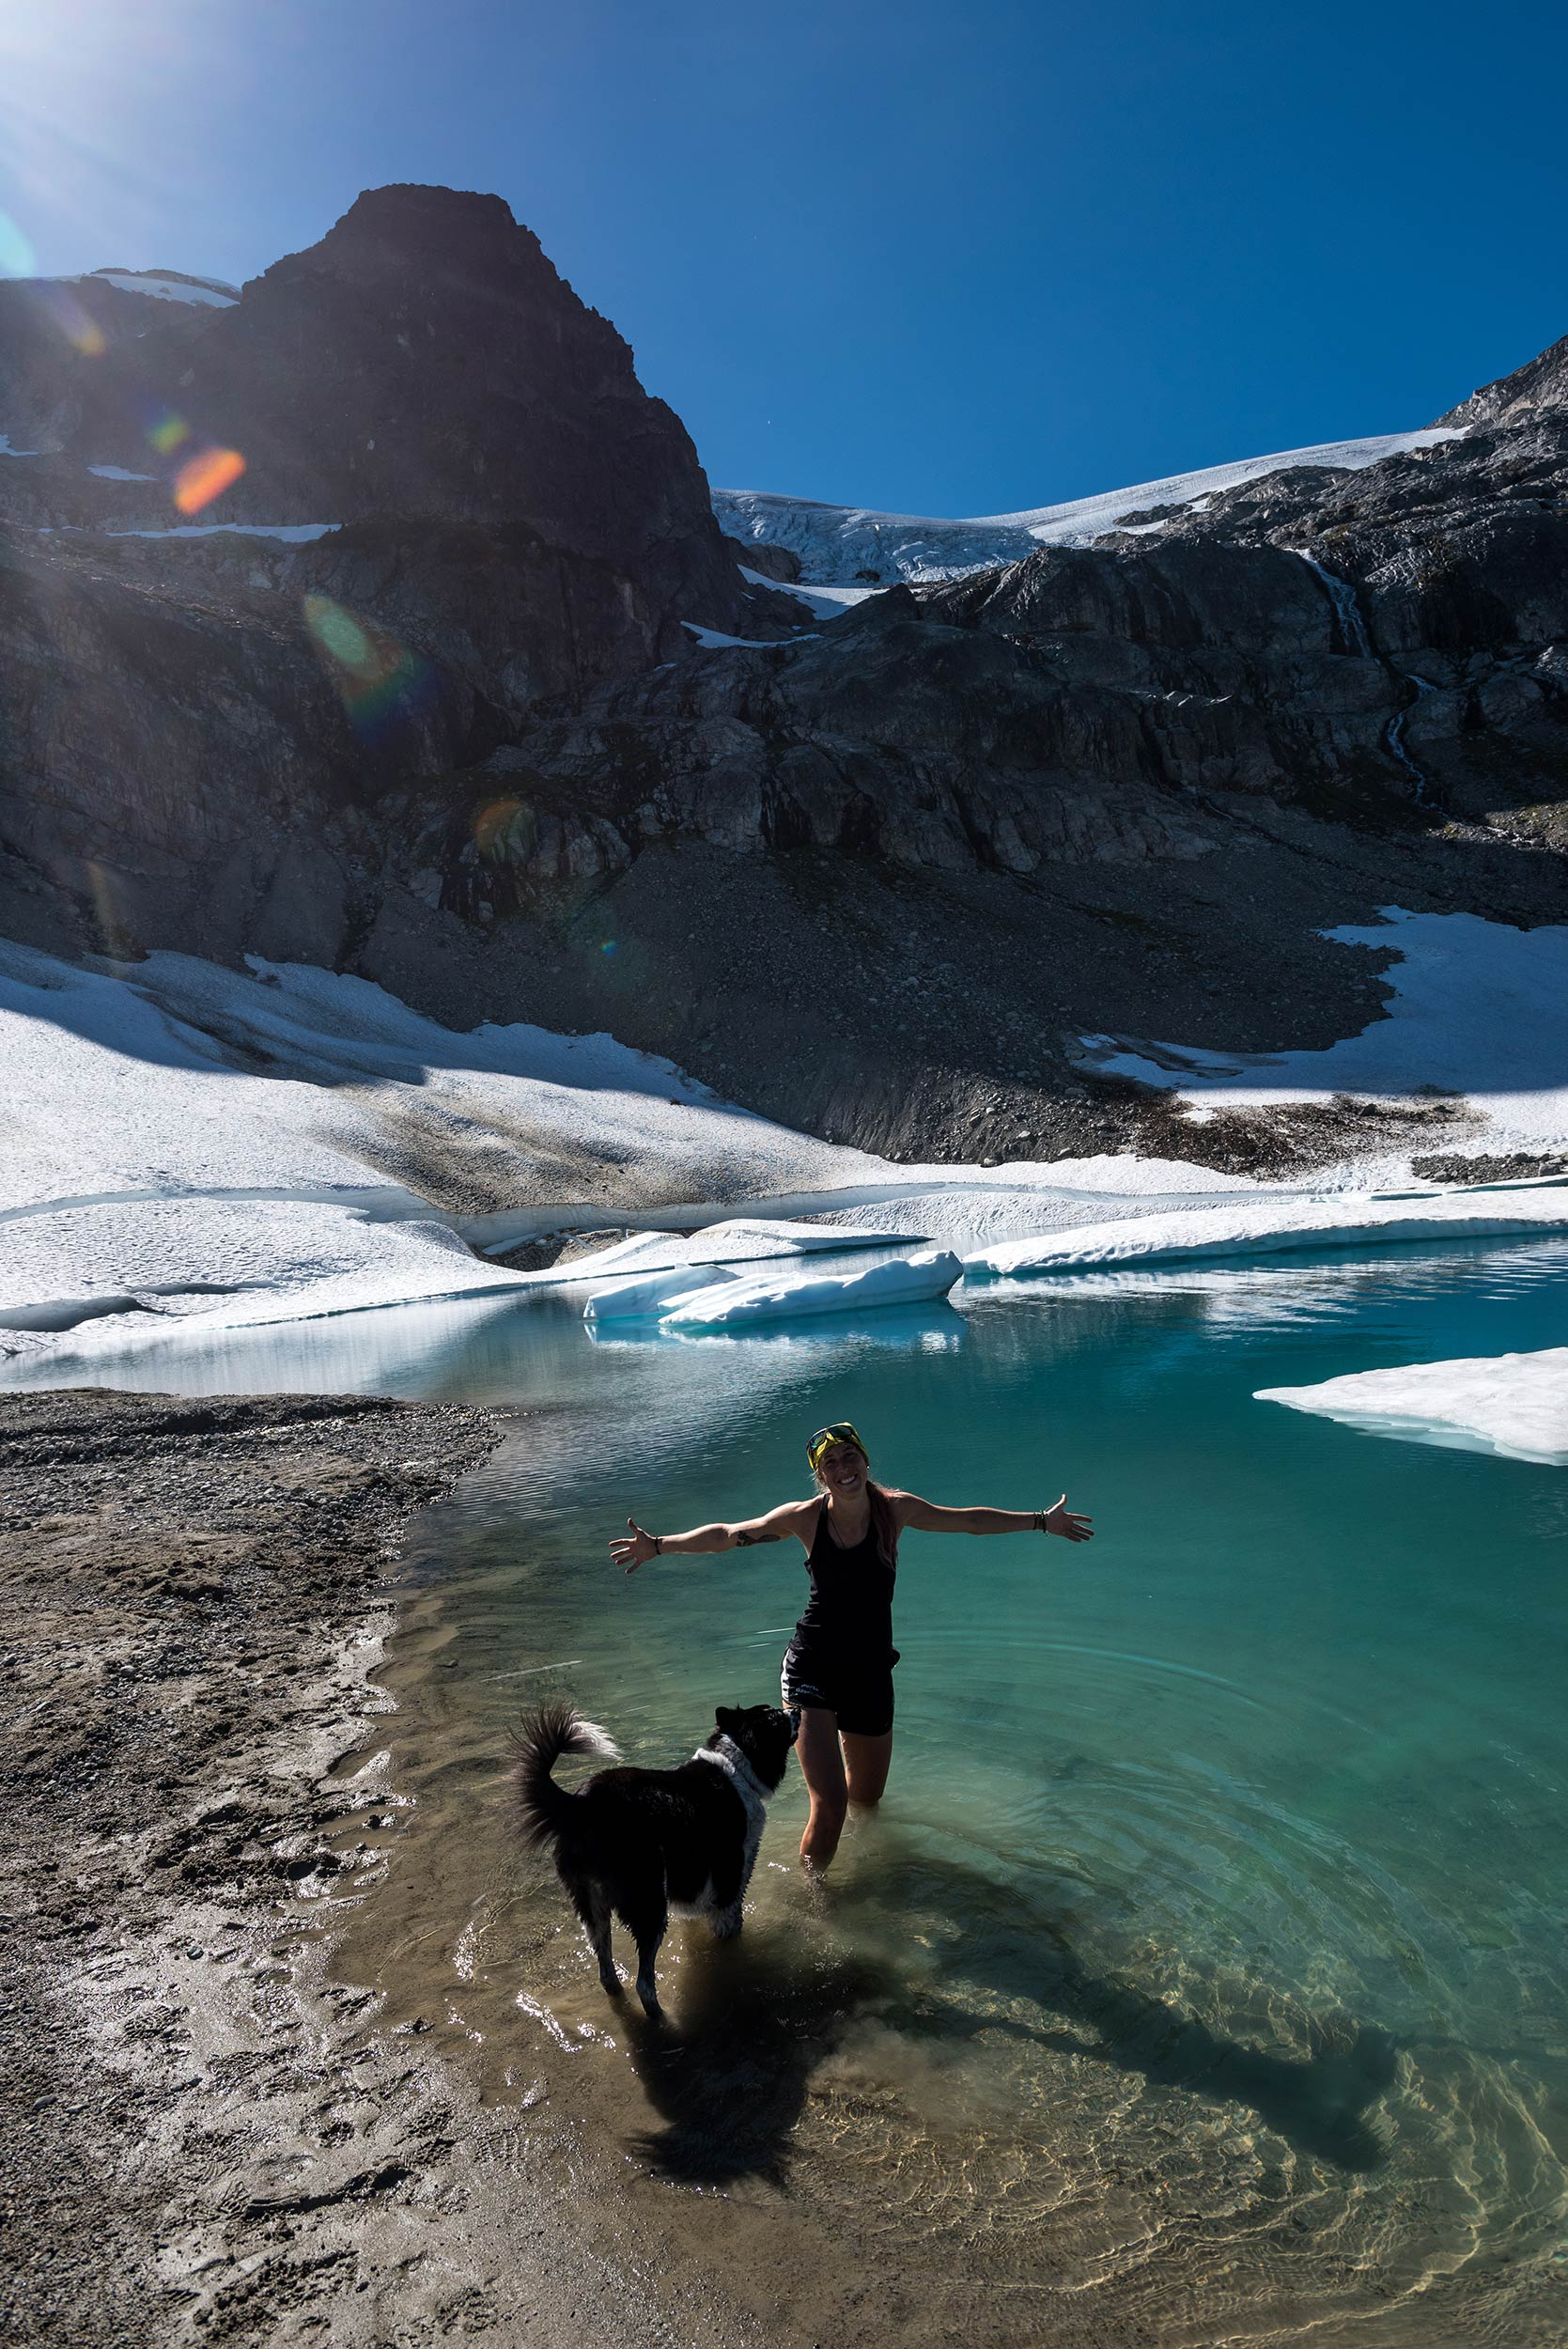 iceberg_lake_skywalk_trail7_candice_nugget.jpg